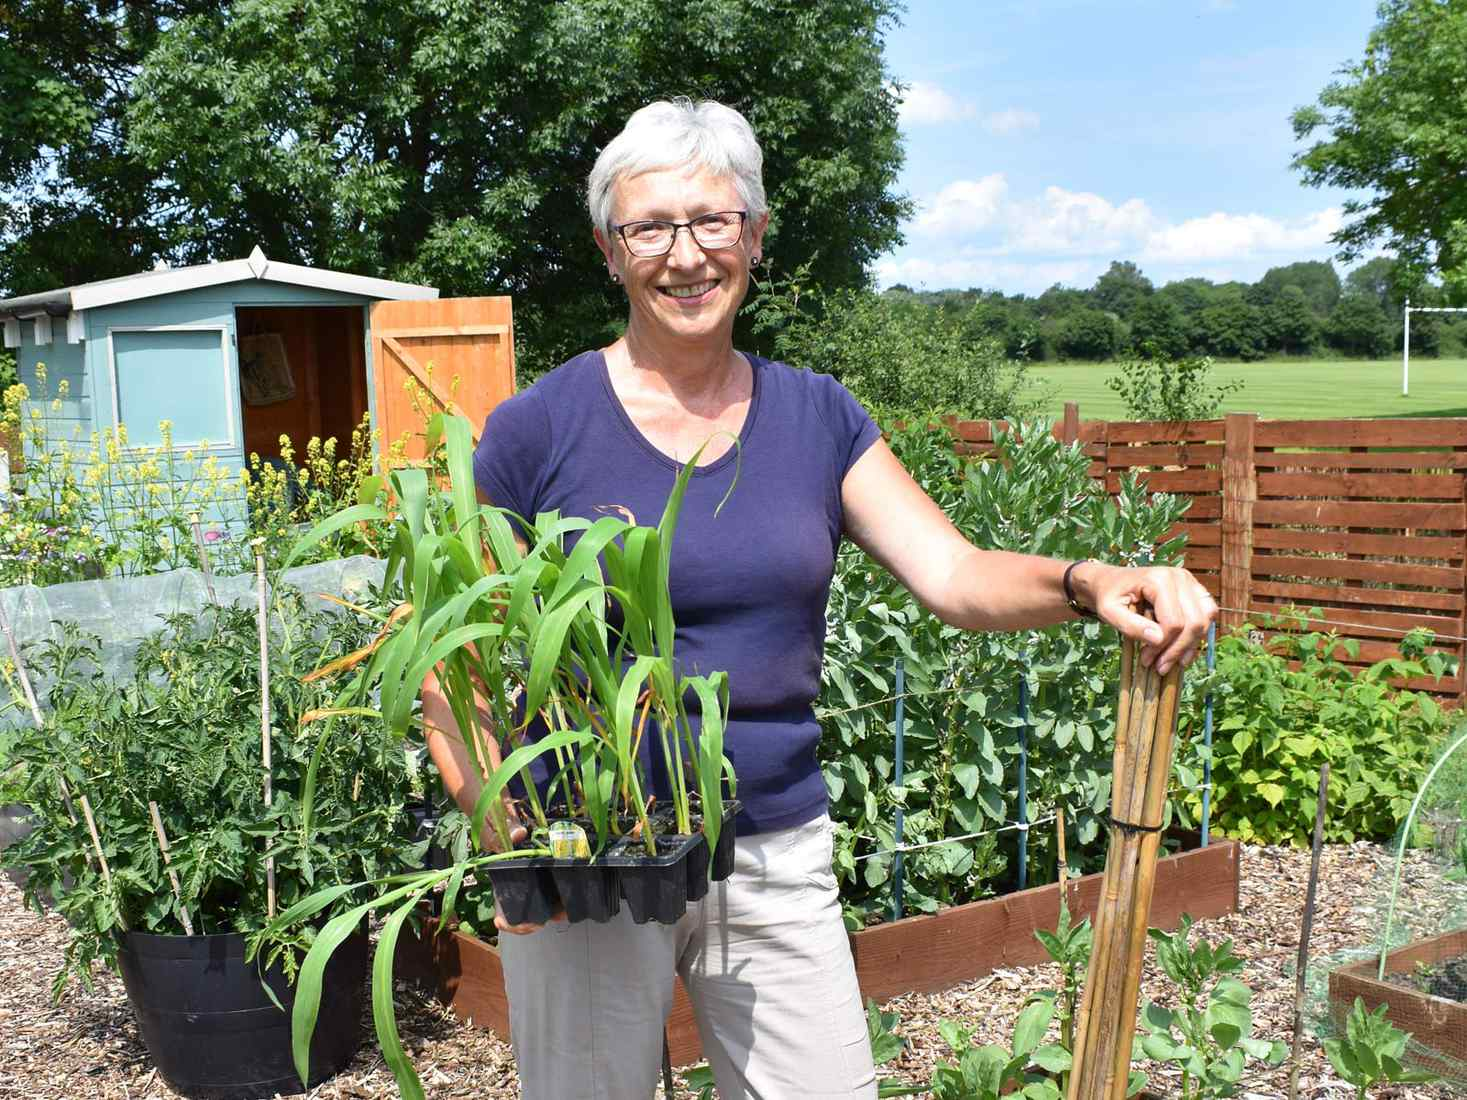 A smiling woman holding a tray of plants at the York St John allotment site